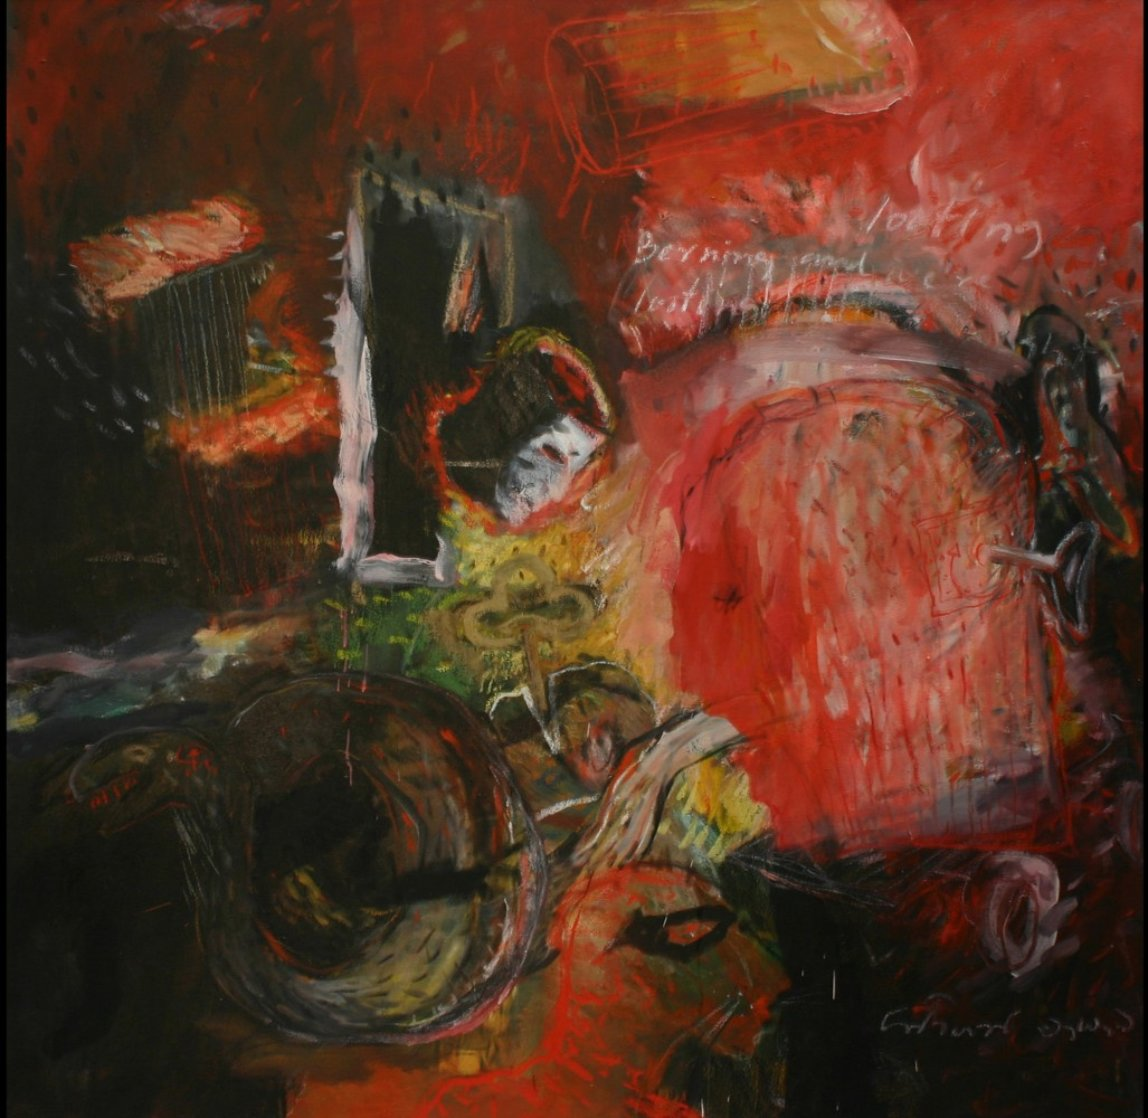 Burning And the Looting 2005 48x48 Super Huge Original Painting by Geeth Kudaligamage